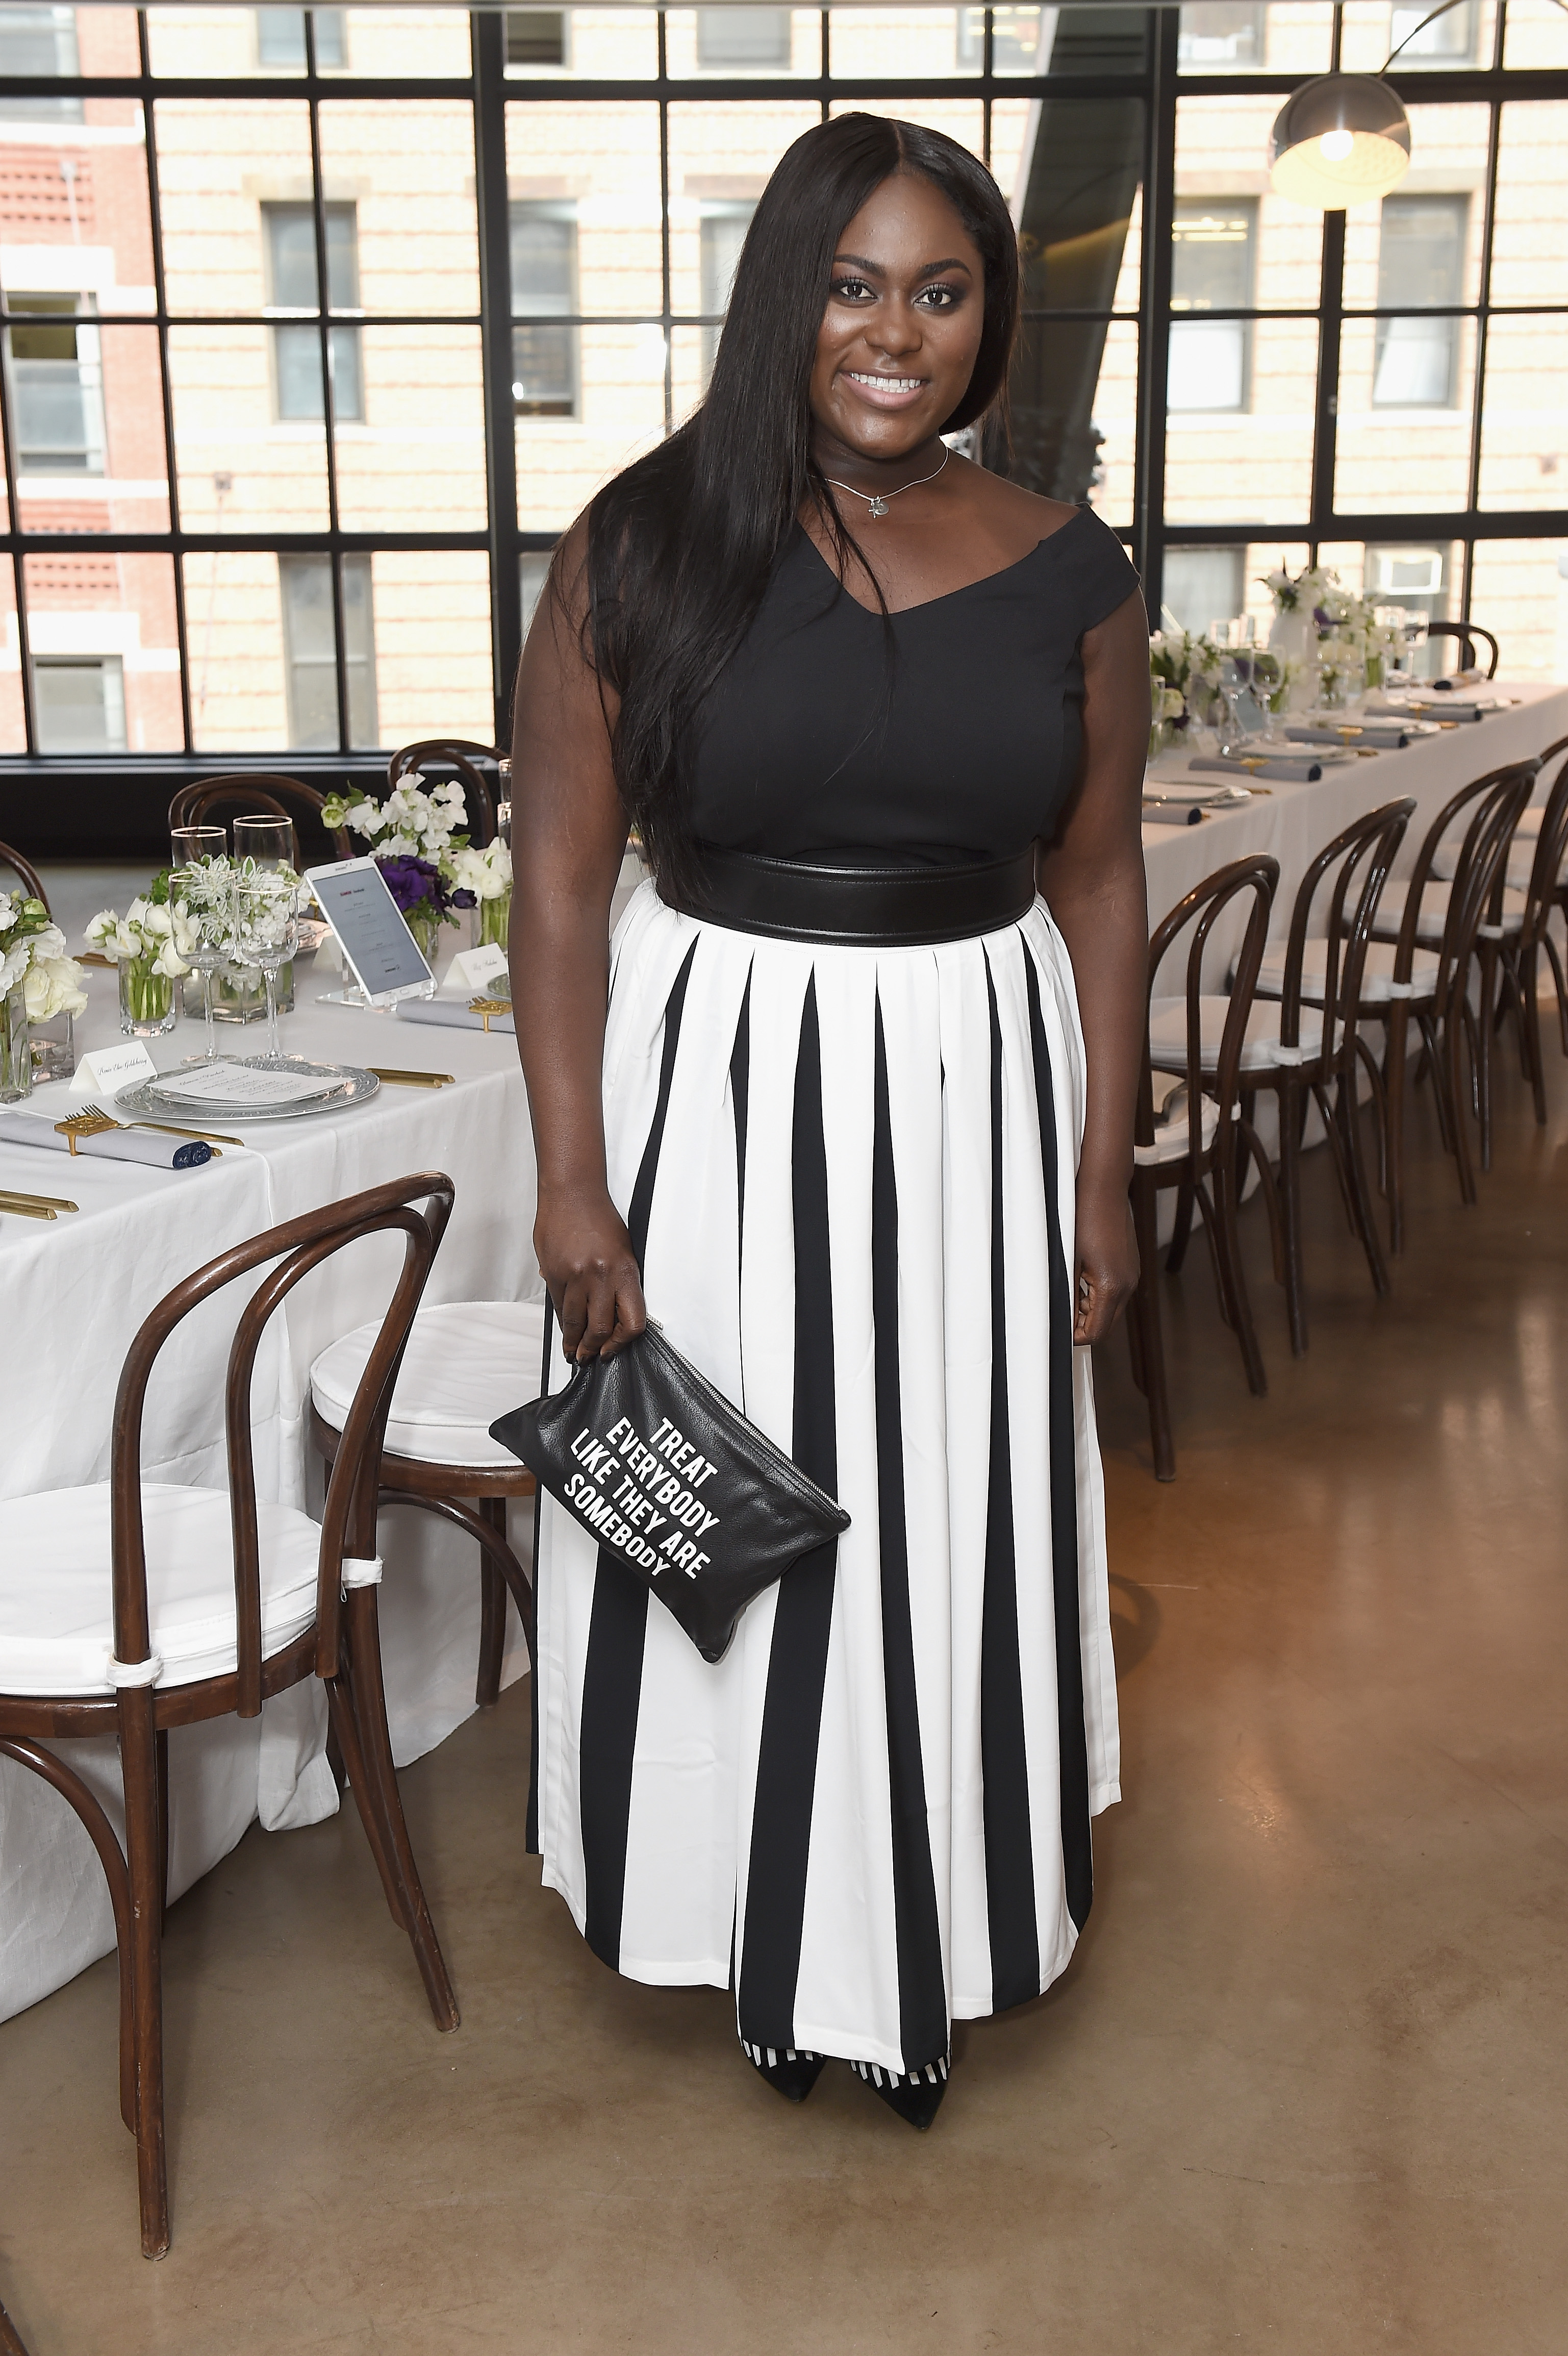 Glamour And Facebook Host Luncheon To Discuss Election 2016 At Samsung 837 In NYC